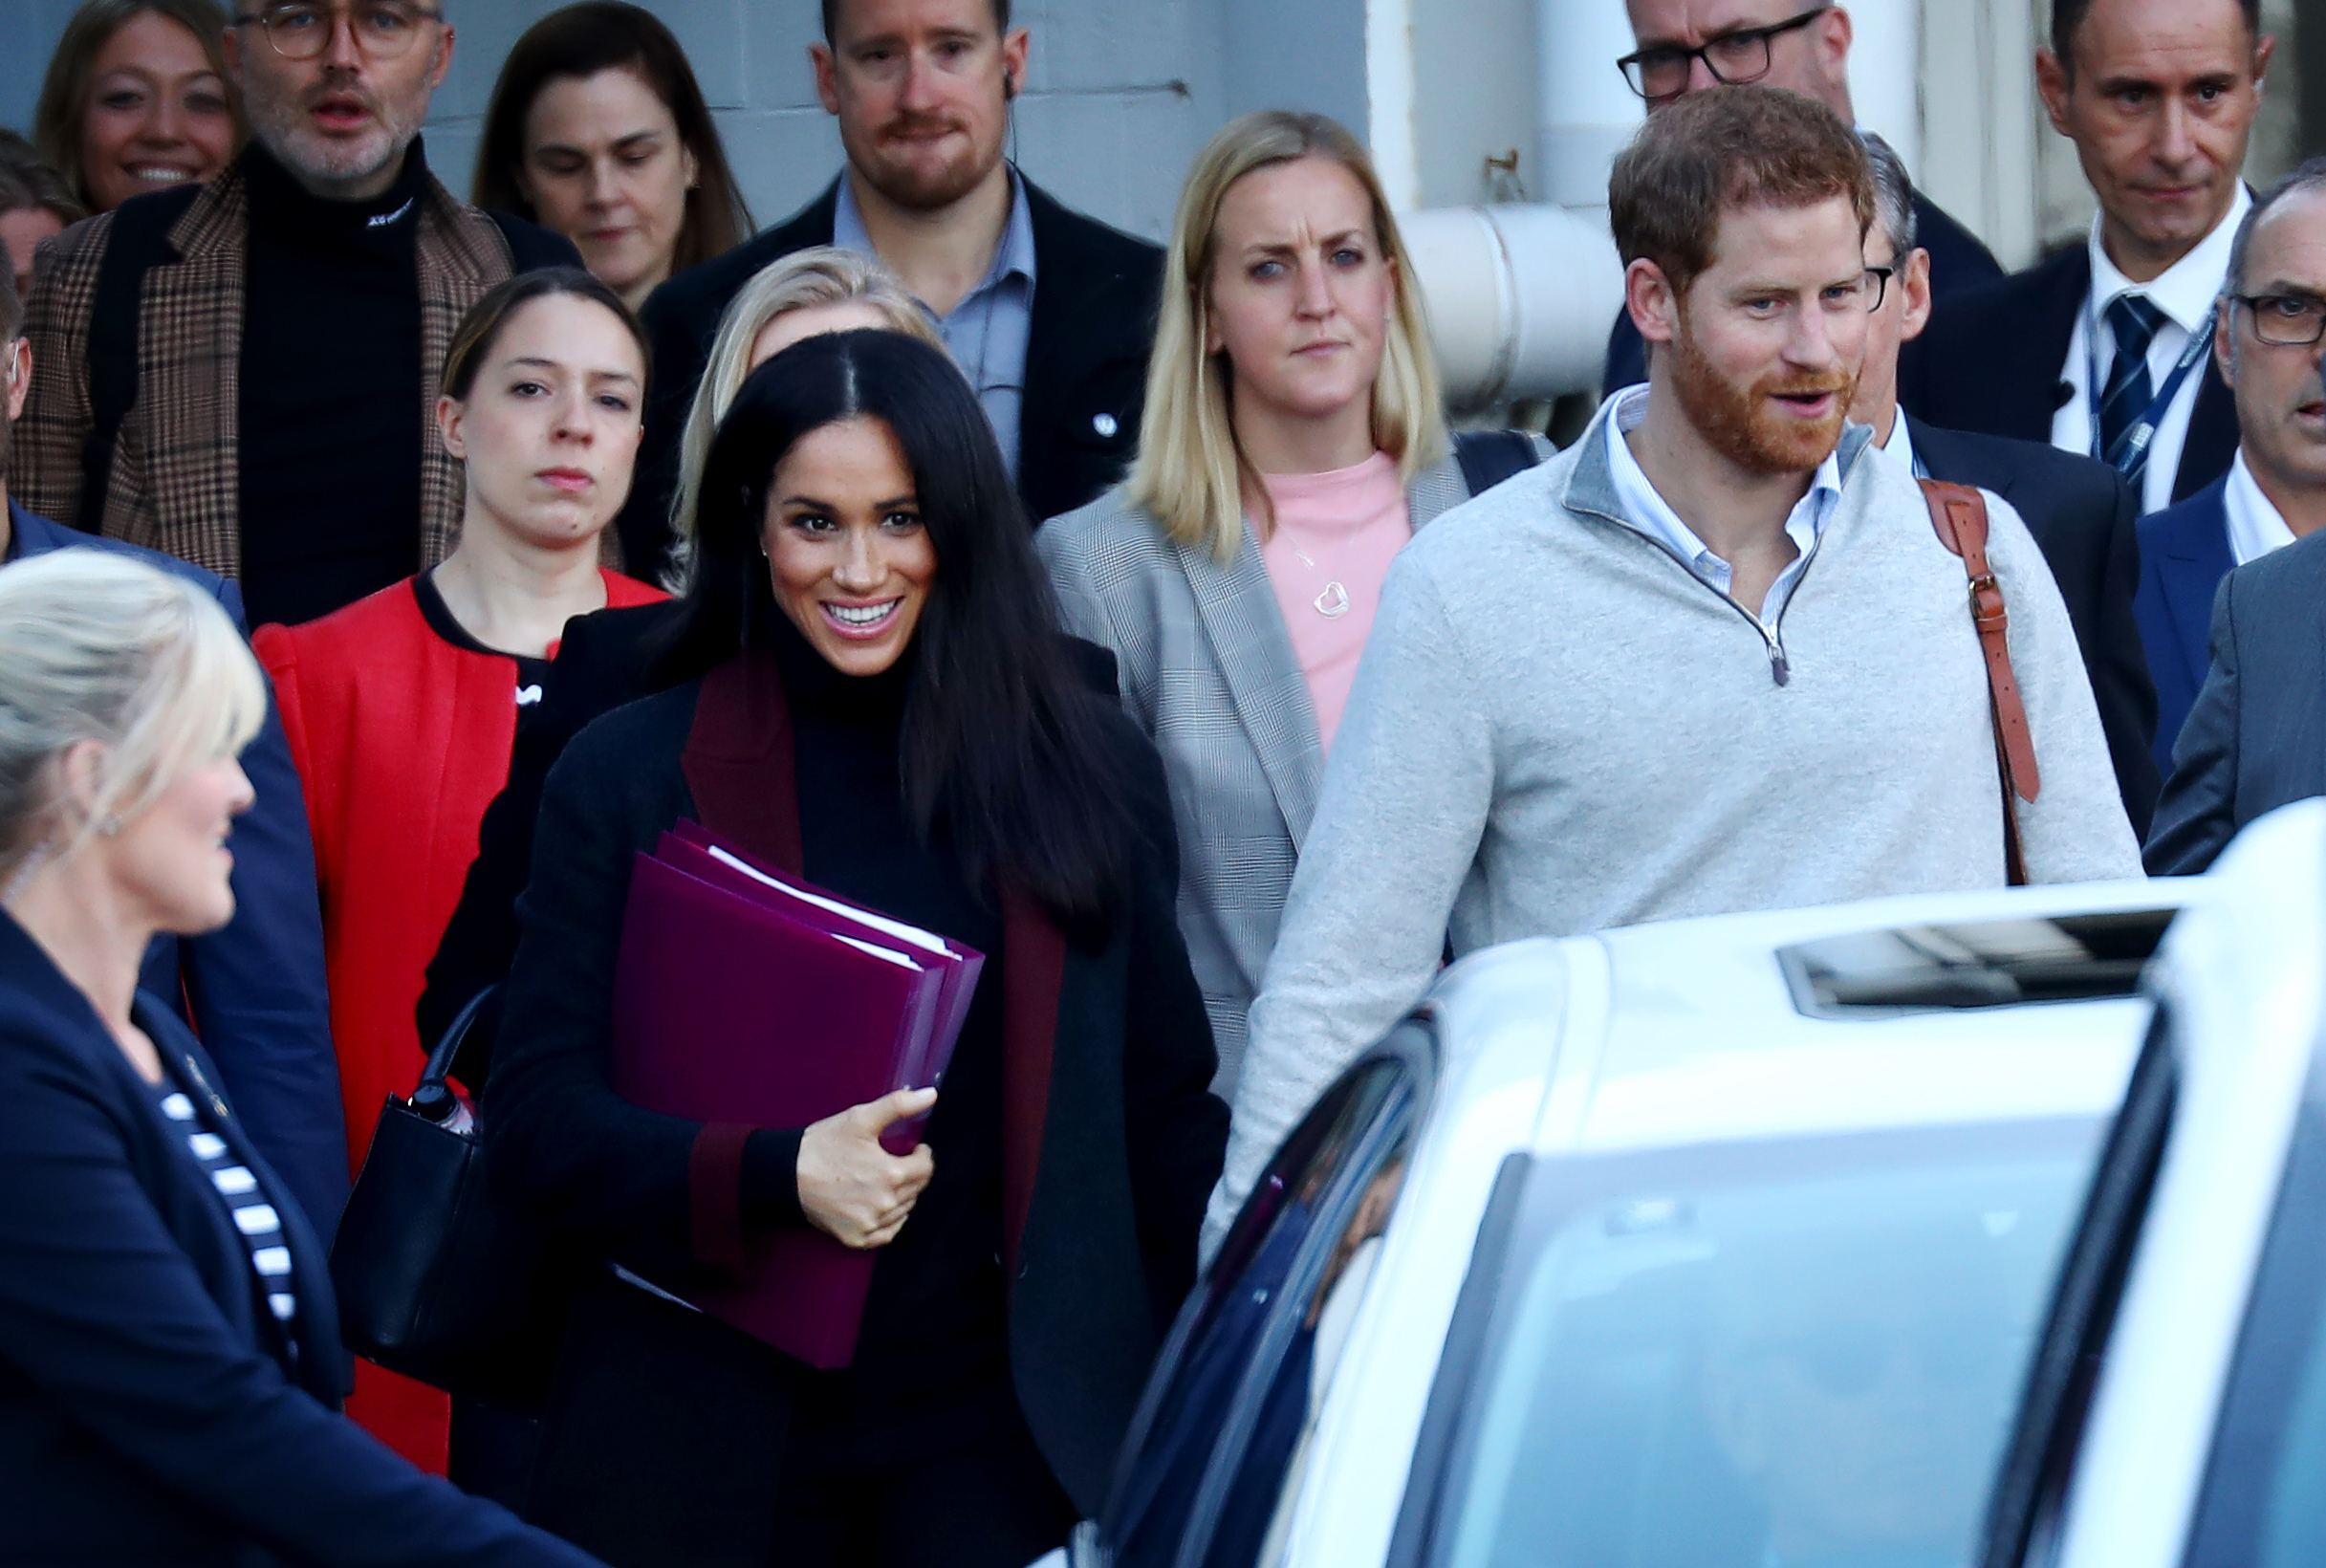 Prince Harry, Duke of Sussex and Meghan, Duchess of Sussex arrive into Sydney International Airport in Sydney on Oct. 15, 2018.